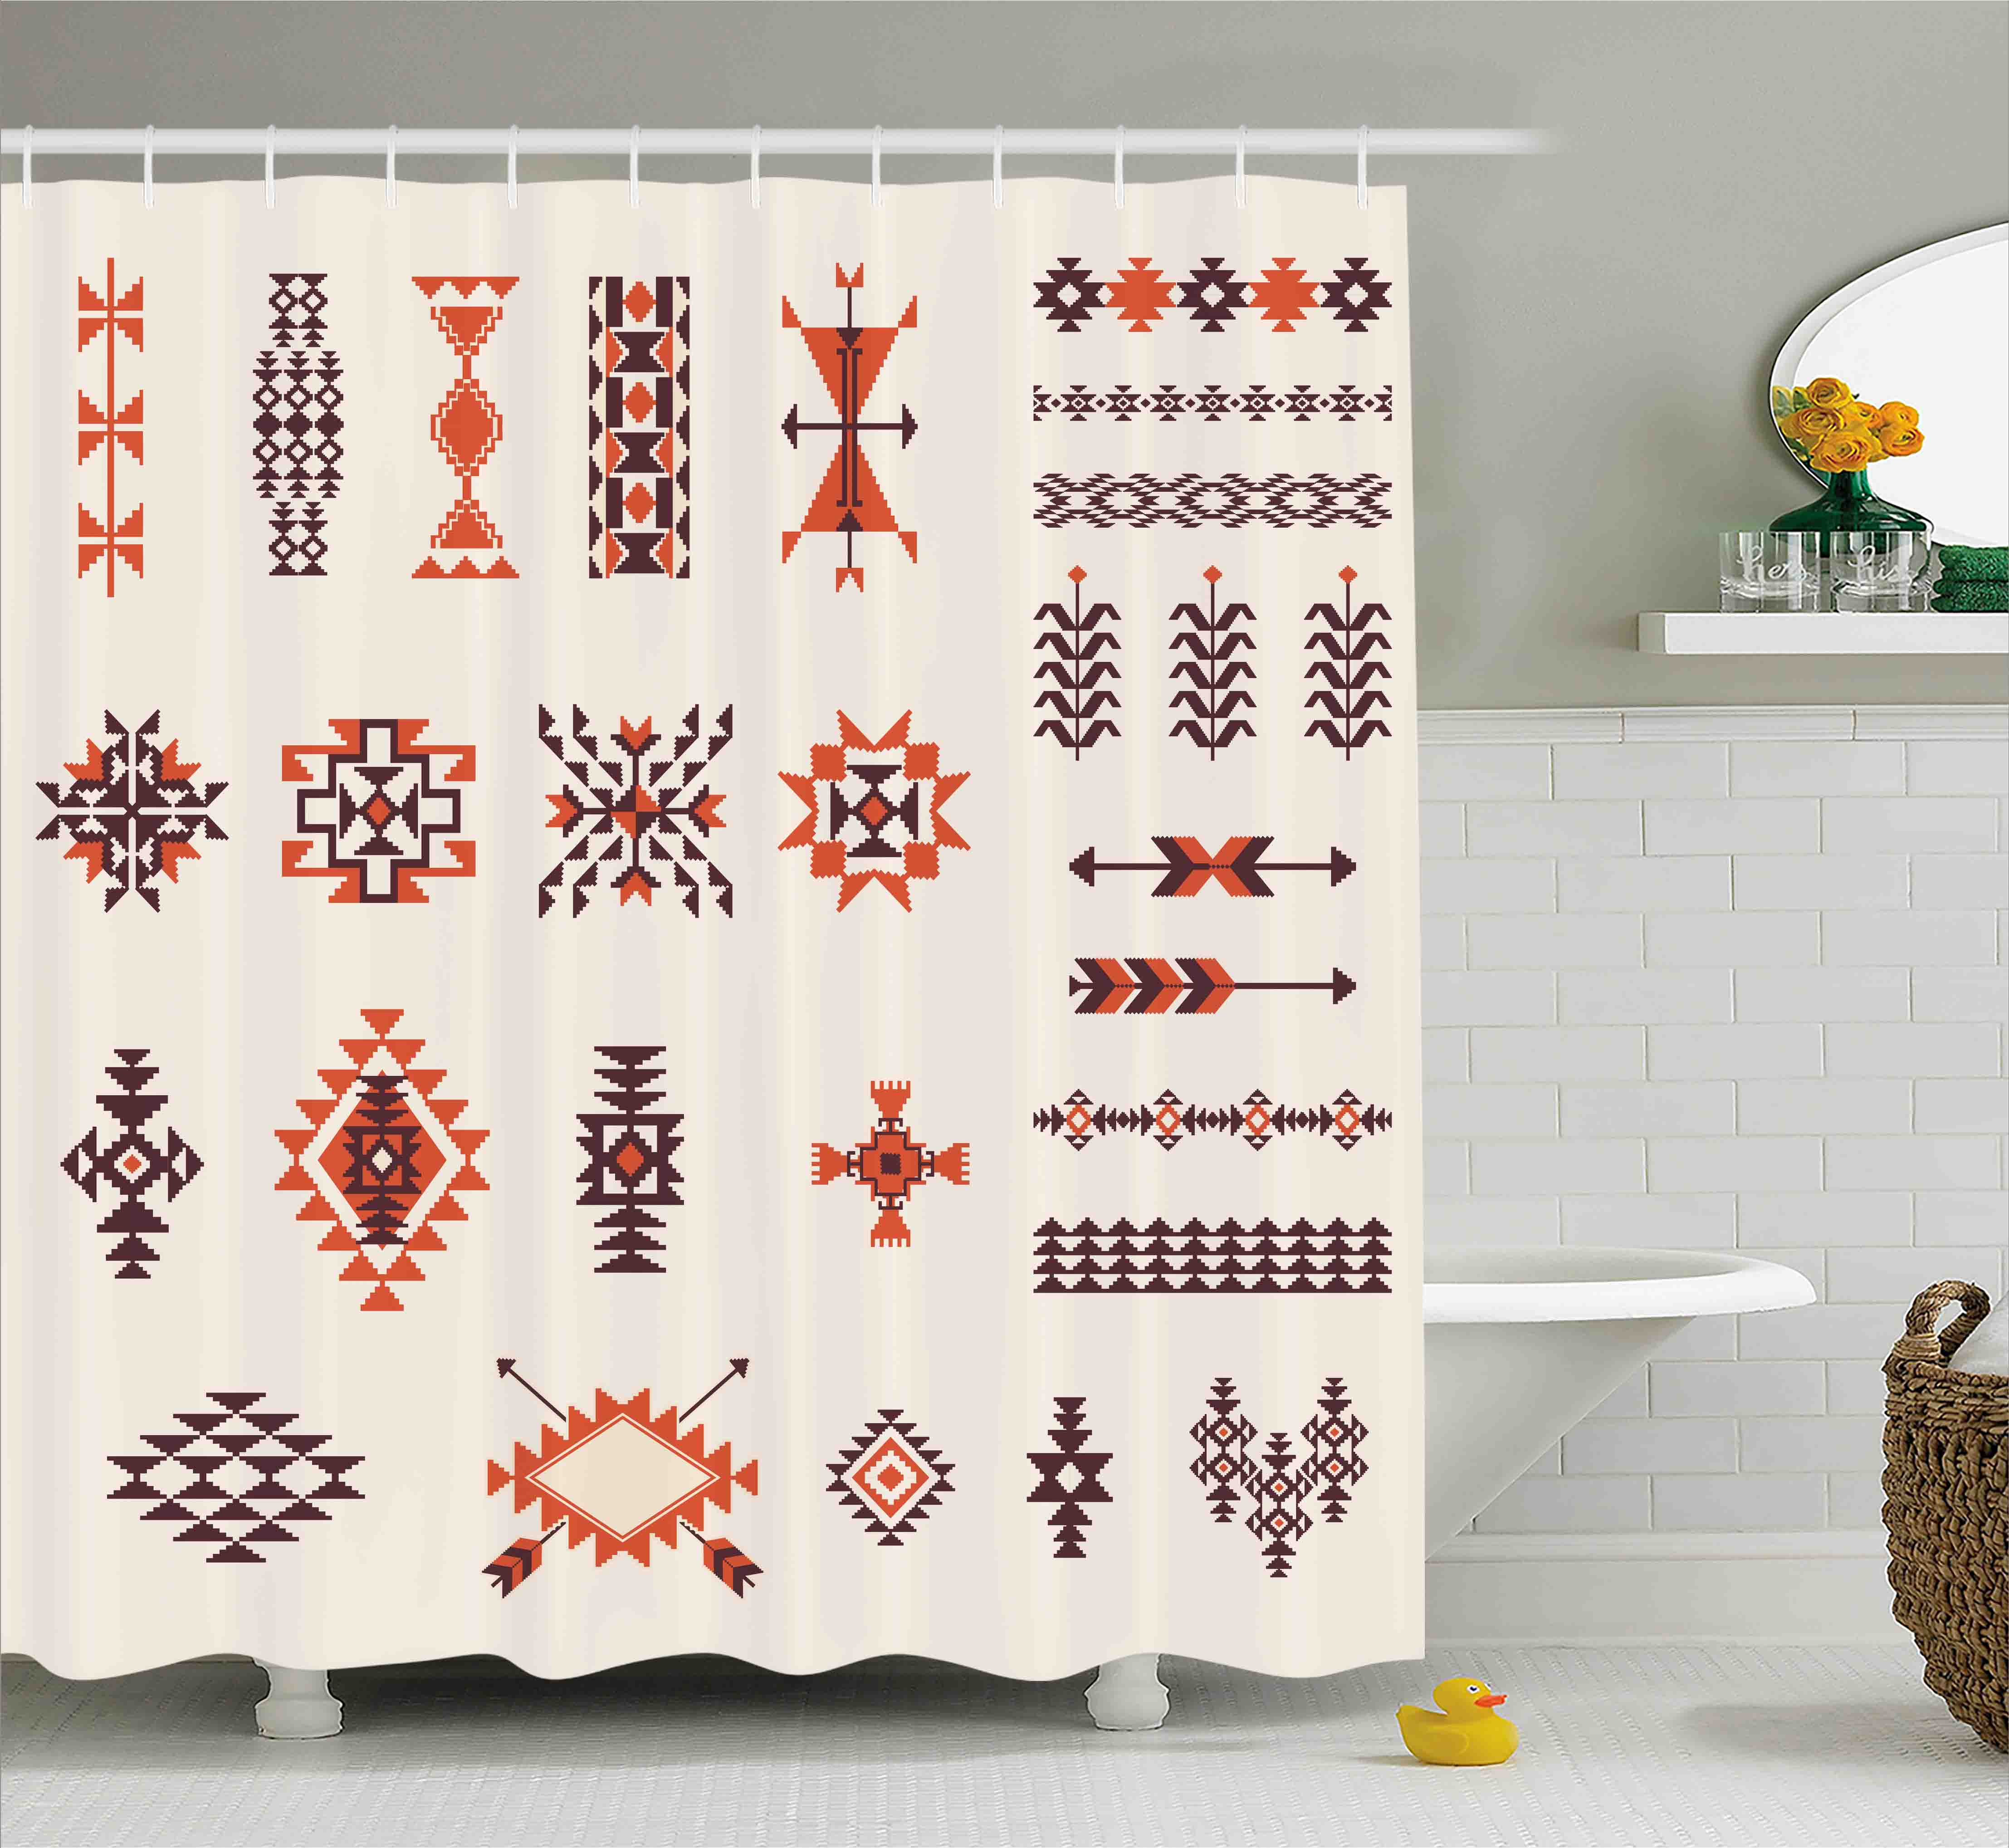 Native American Shower Curtain Illustration Of Aztec Culture Pattern Tribal Design Geometric Print Fabric Bathroom Set With Hooks Orange And Brown